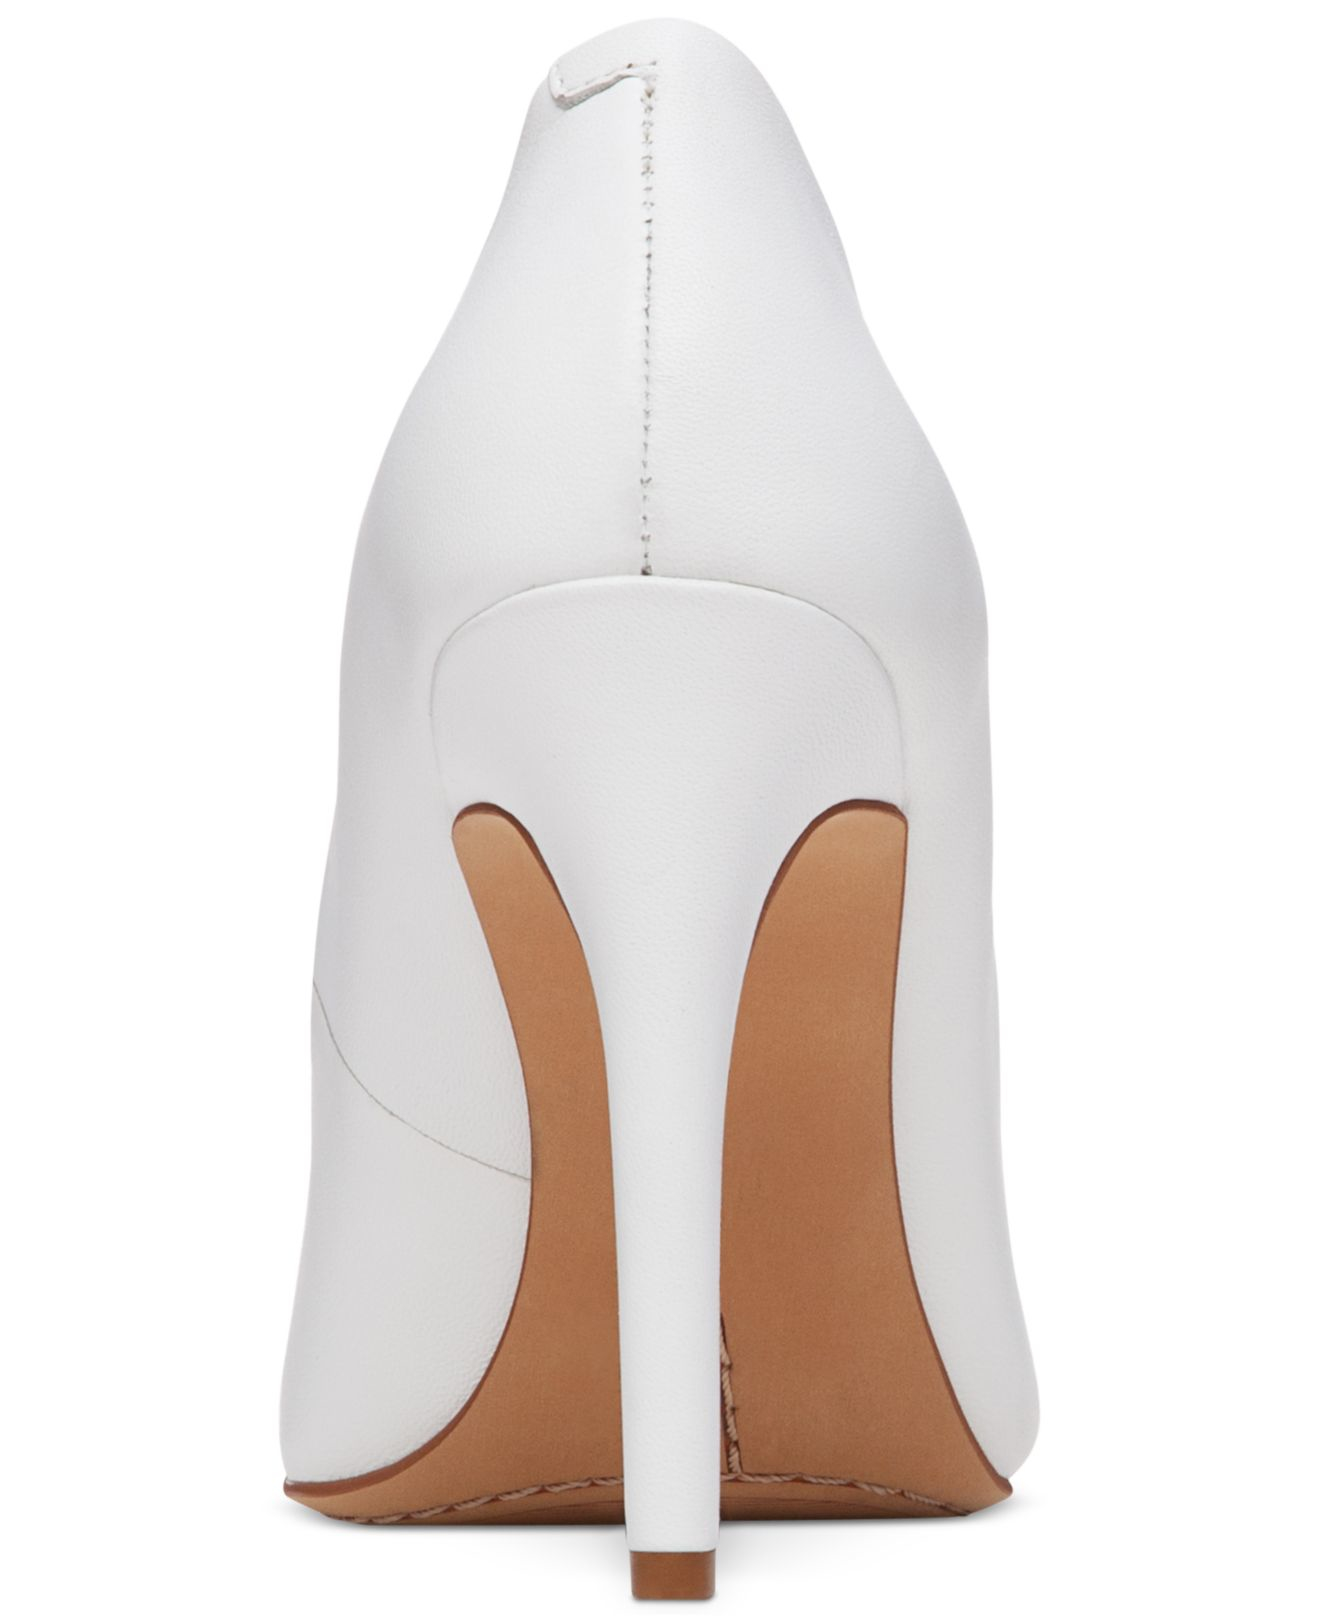 ae6c10c7a0 Gallery. Previously sold at: Macy's · Women's Pointed Toe Pumps